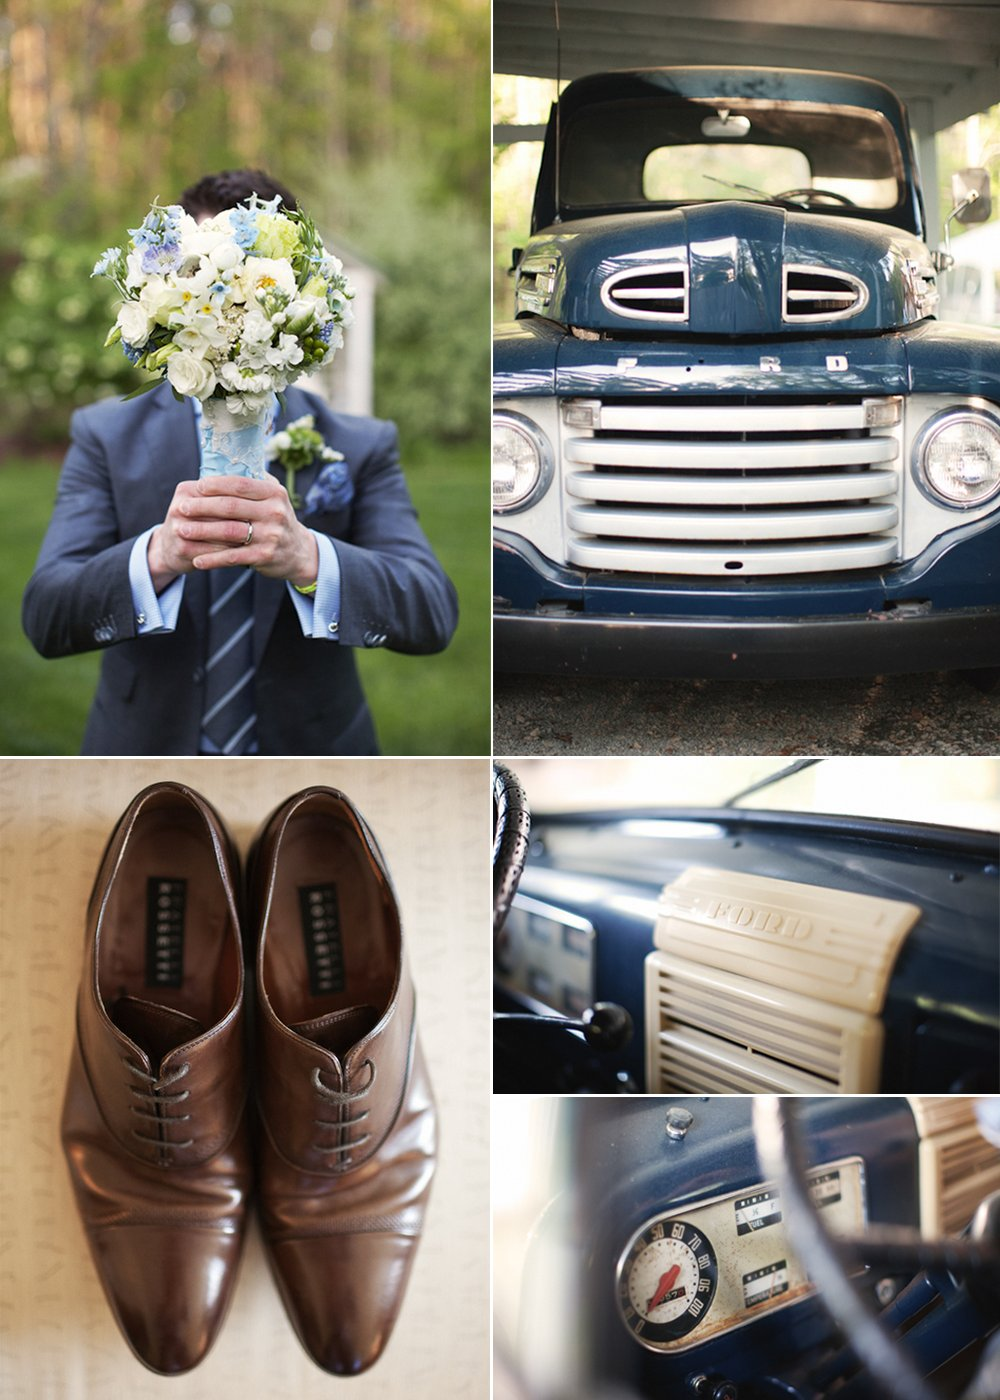 Outdoor-real-wedding-grooms-attire-brides-bouquet-vintage-wedding-car.full